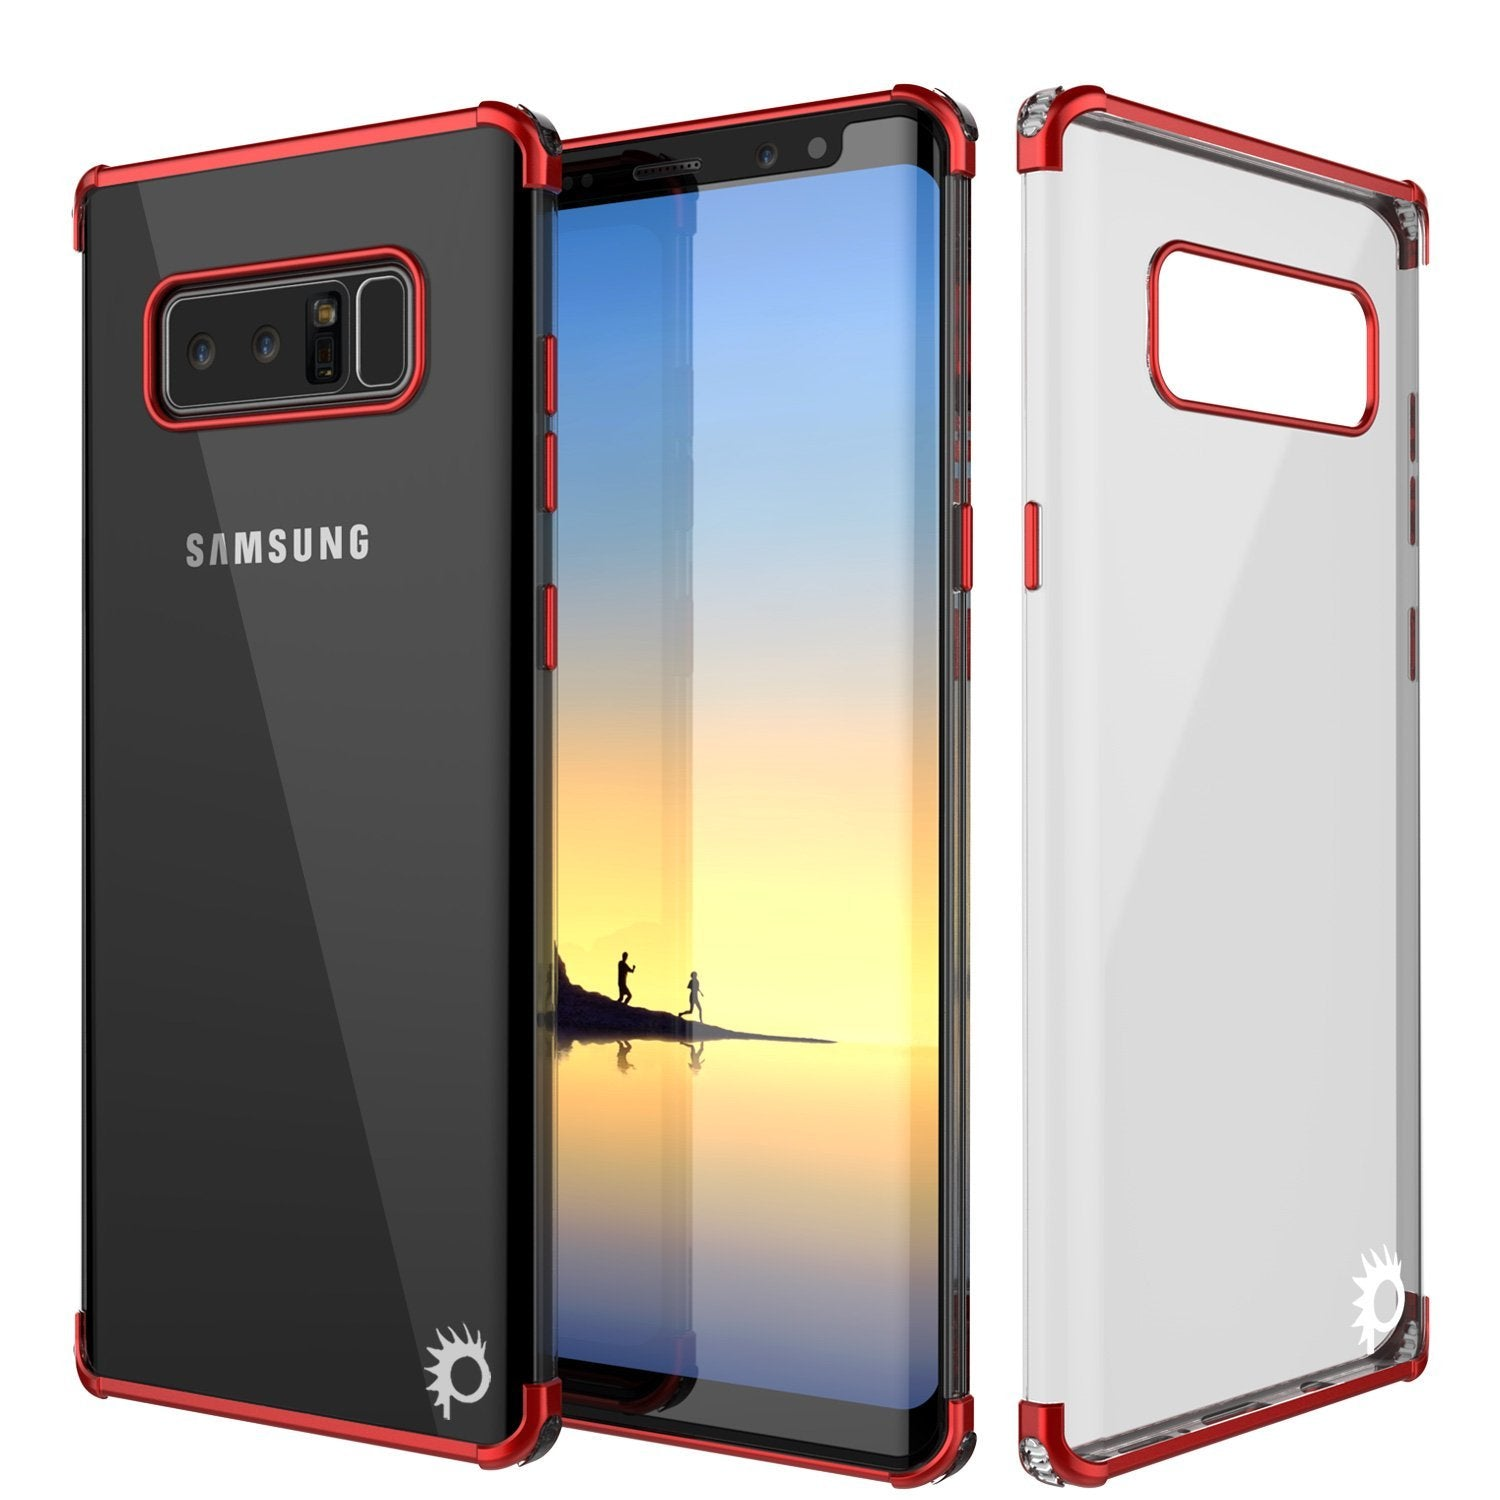 Galaxy Note 8 Punkcase Slim-Fit Case W/ Screen Protector Cover [Red]